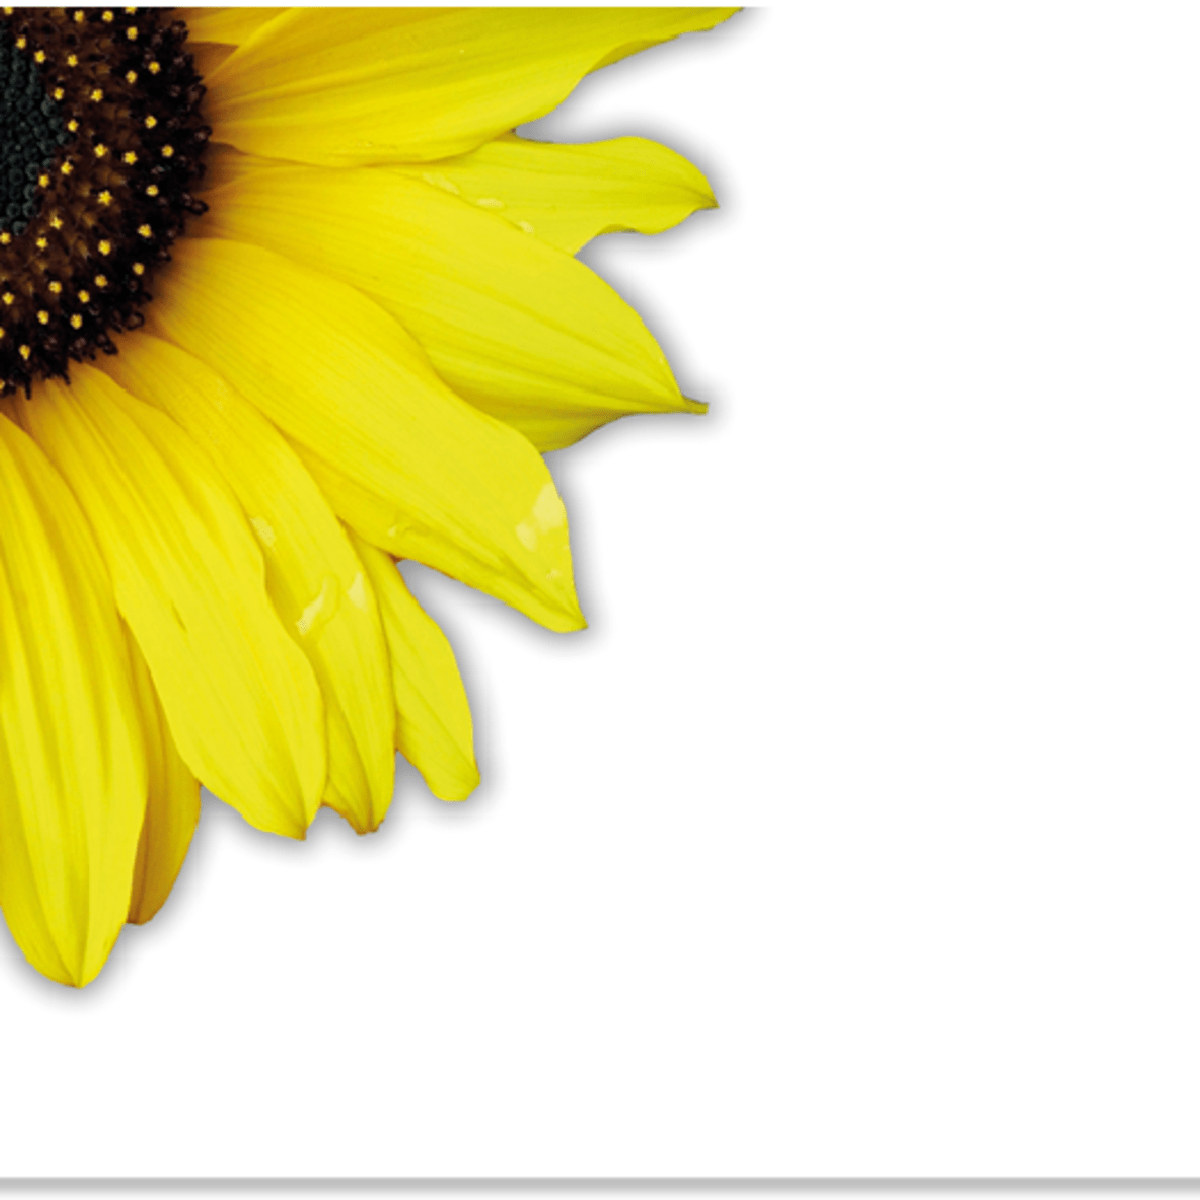 Create A Transparent Image Background Using Pixlr Hubpages